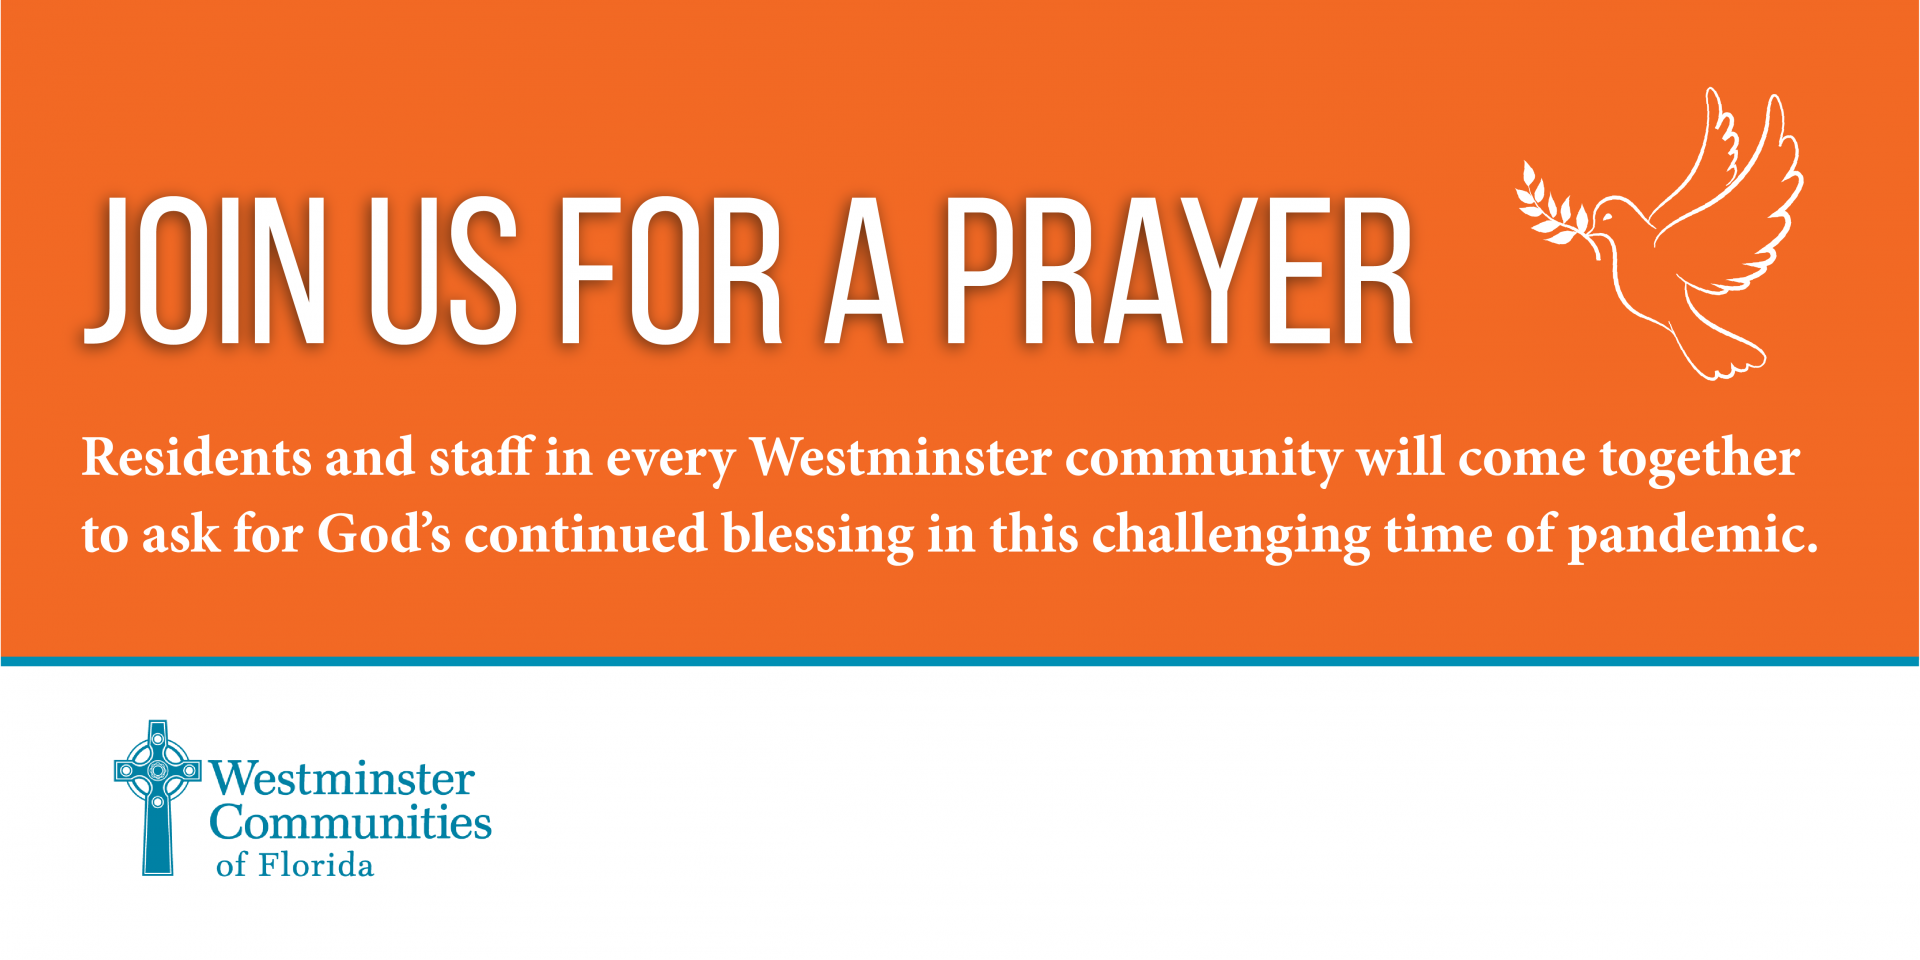 Join Us For a Shared Day of Prayer